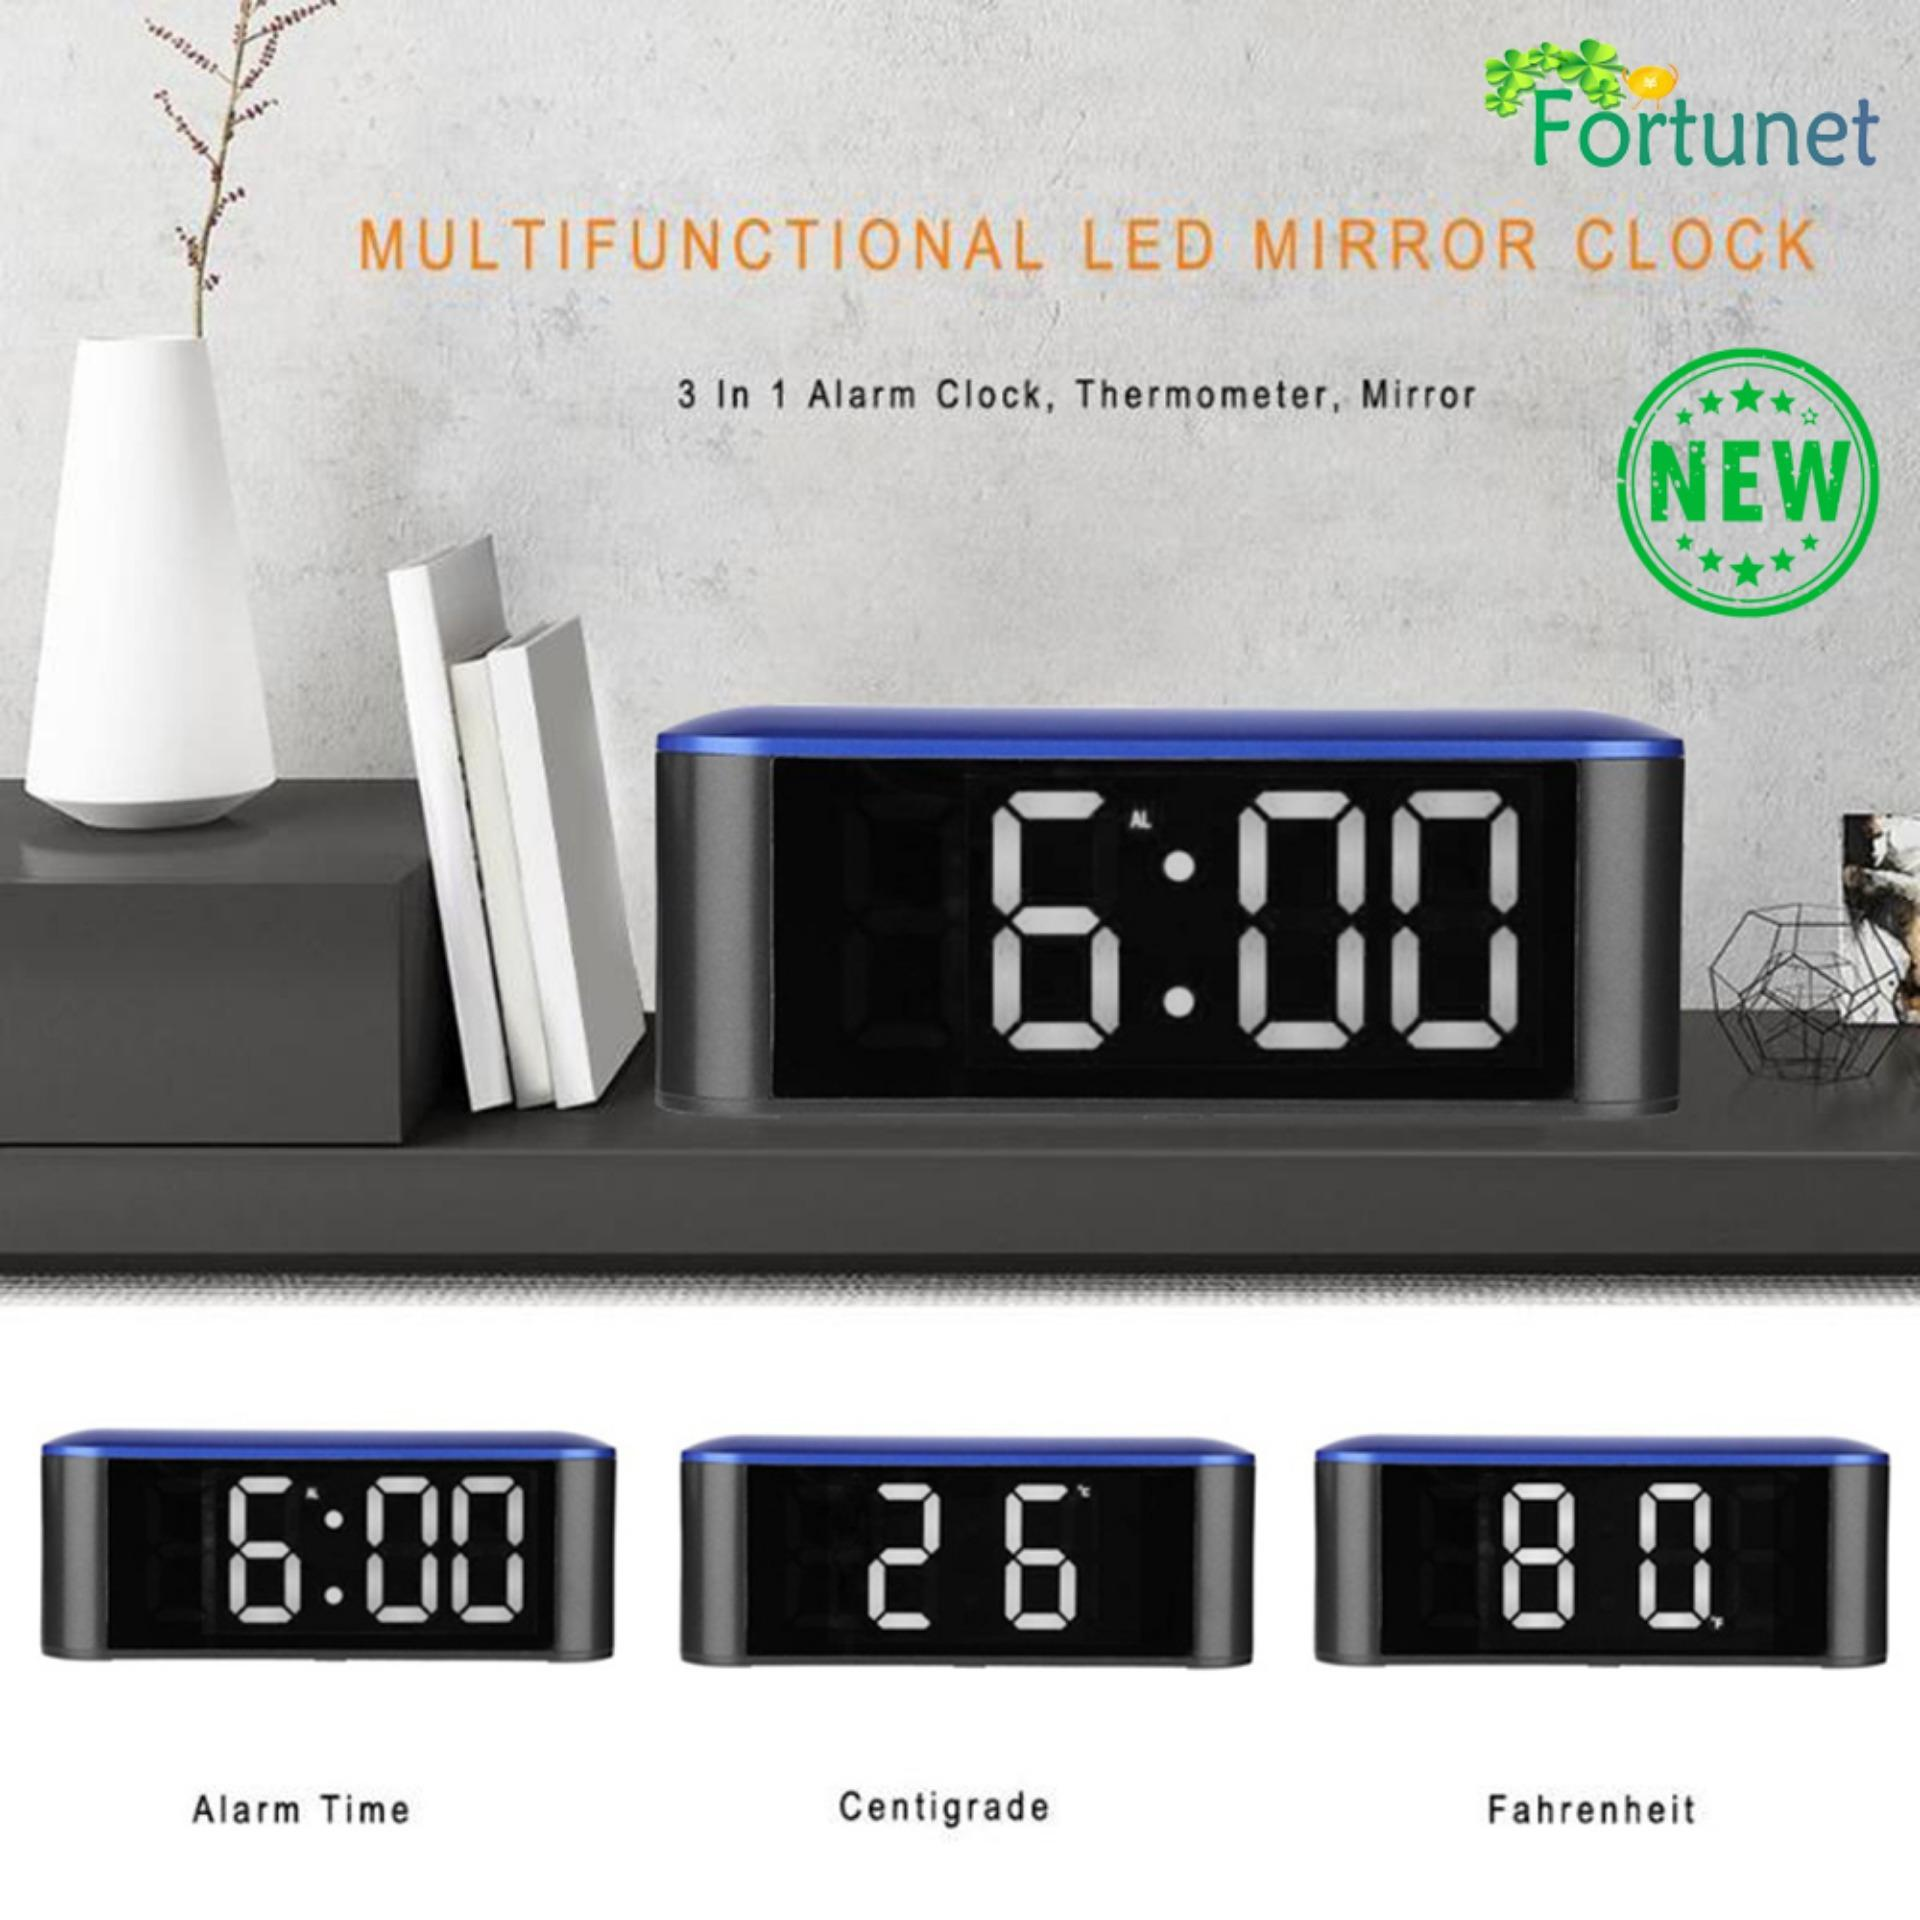 Fortunet LED Digital Alarm Clock, with USB Port for Phone Charger, 0-100% Dimmer, Touch-Activated Snooze.